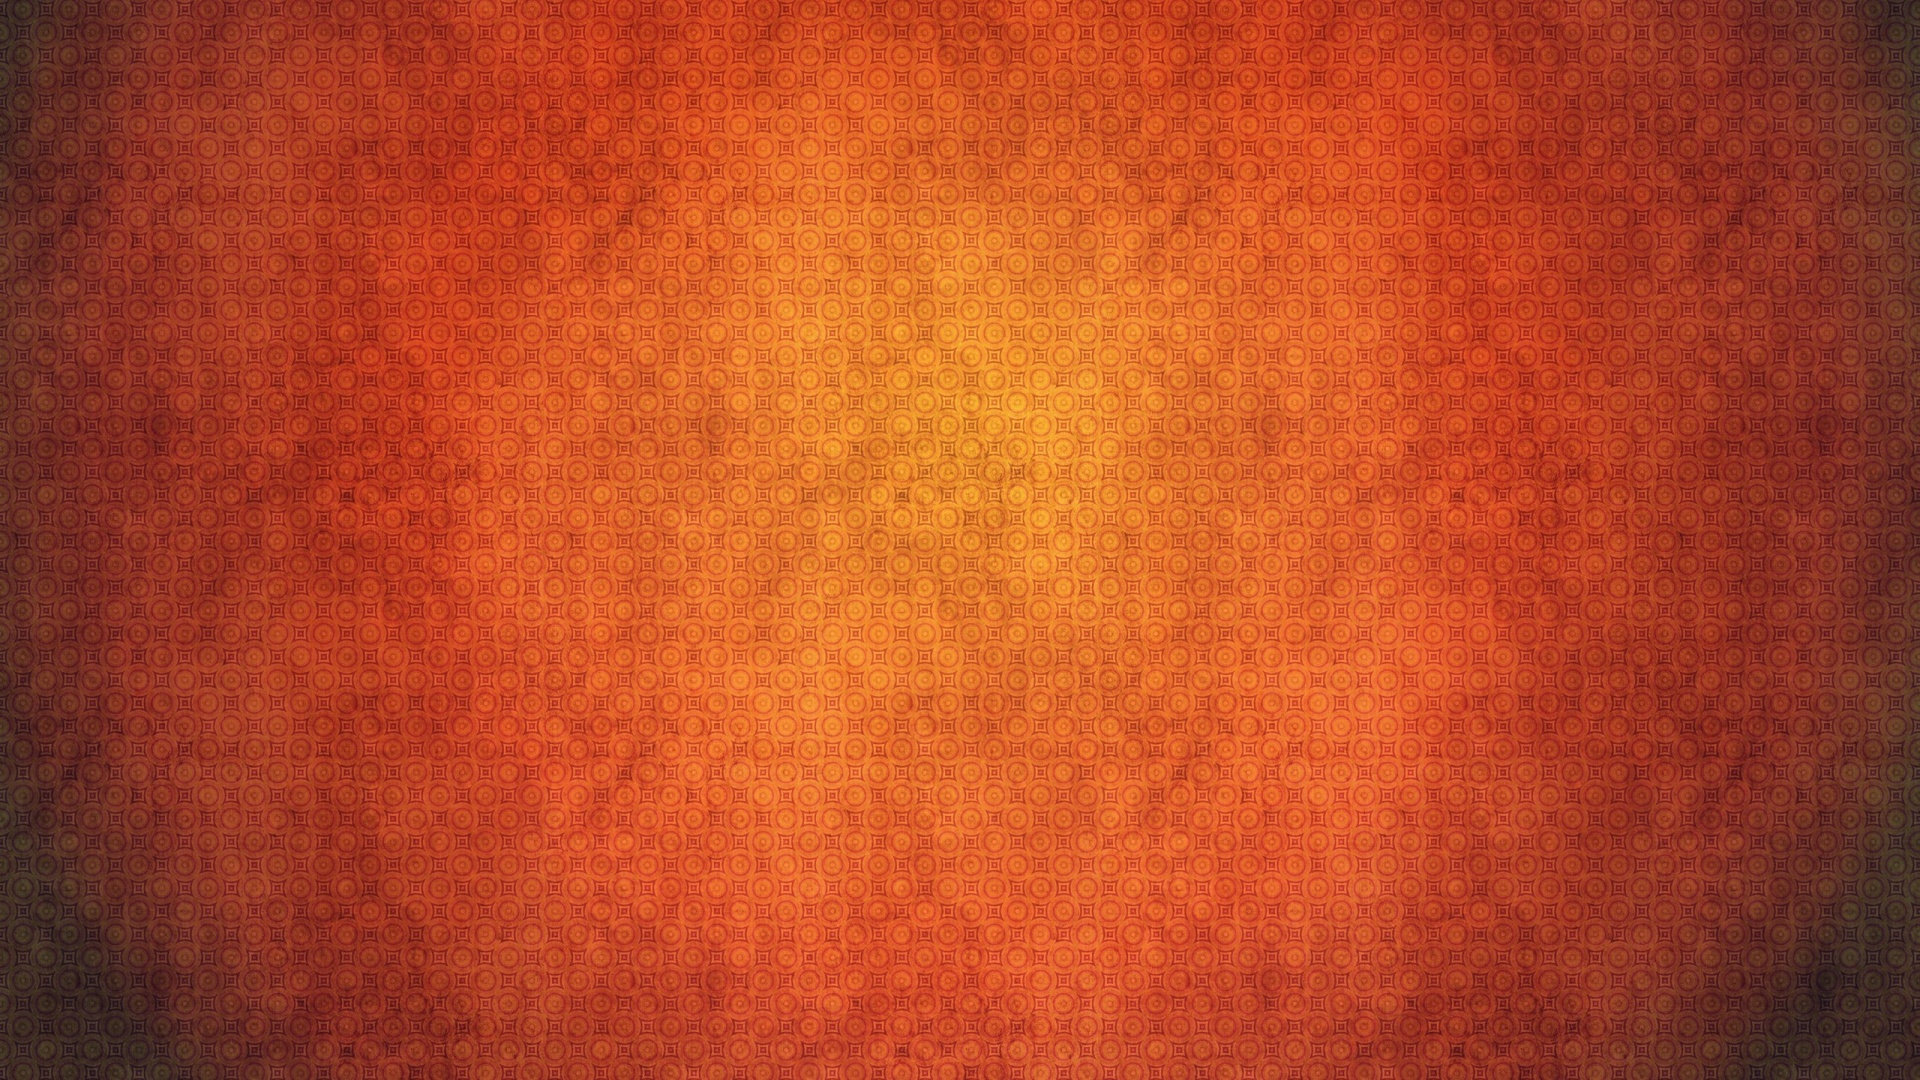 1920x1080 Bright Orange Pattern Desktop Pc And Mac Wallpaper